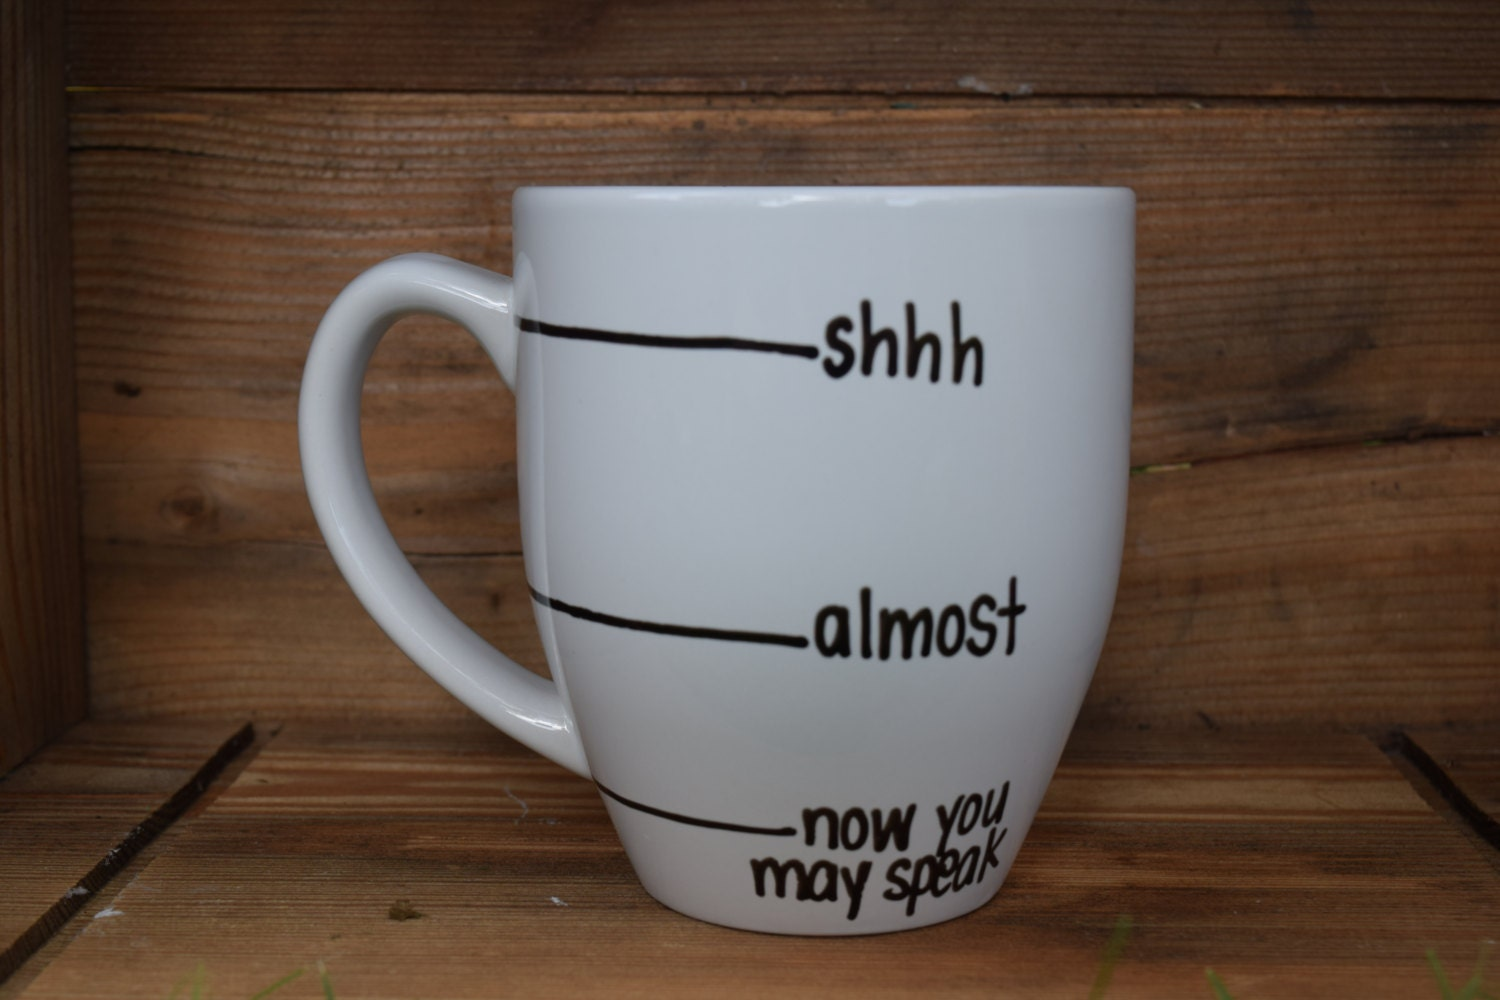 Now you may speak shh almost now you may speak now you may - Funny coffee thermos ...